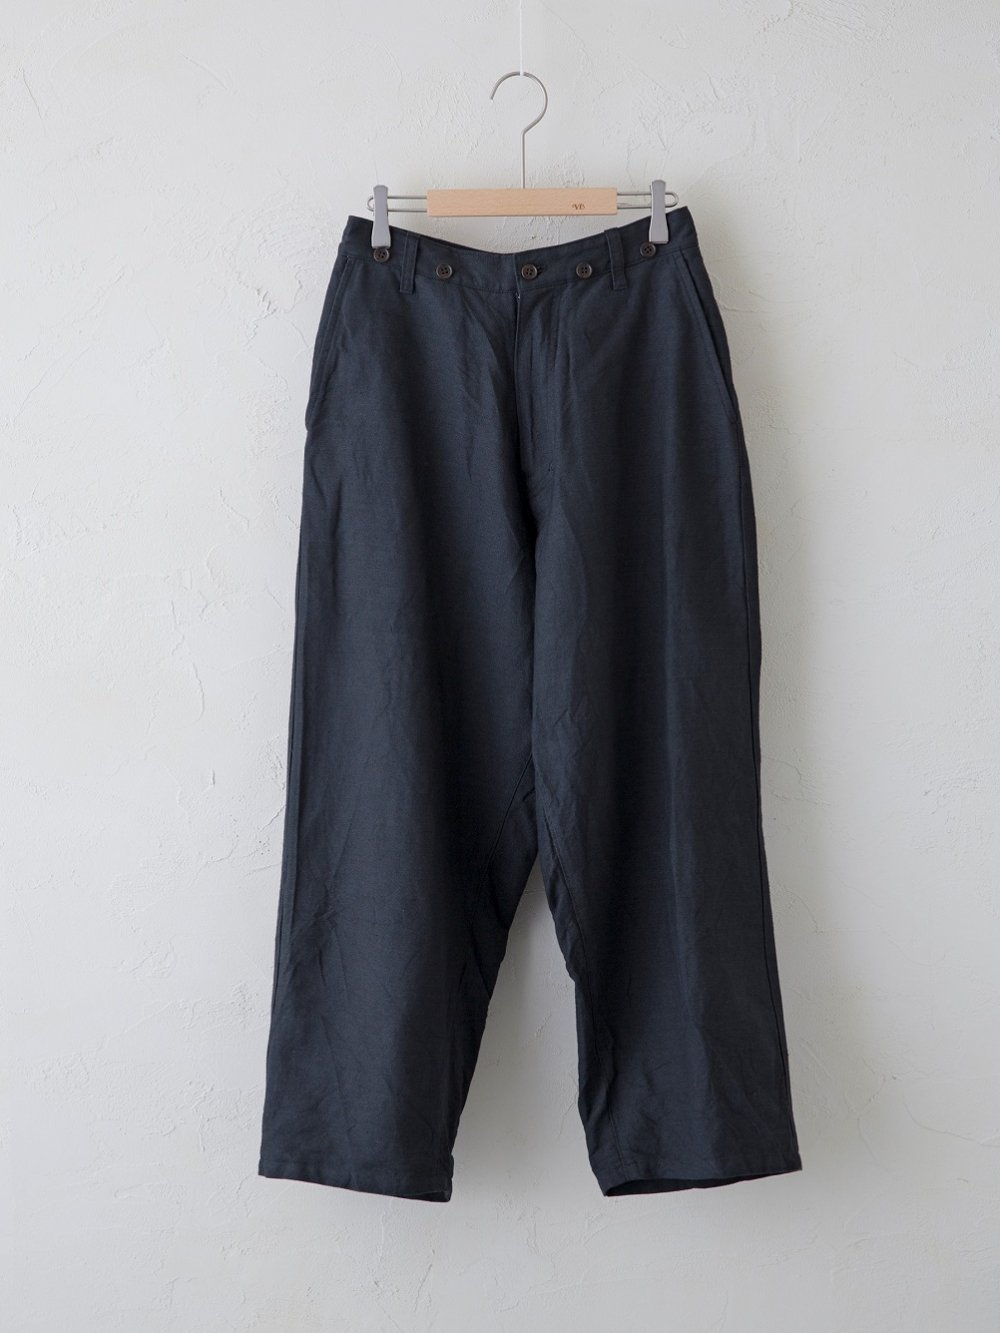 Cotton Linen ラチネ パンツ(Ladies' & Men's)